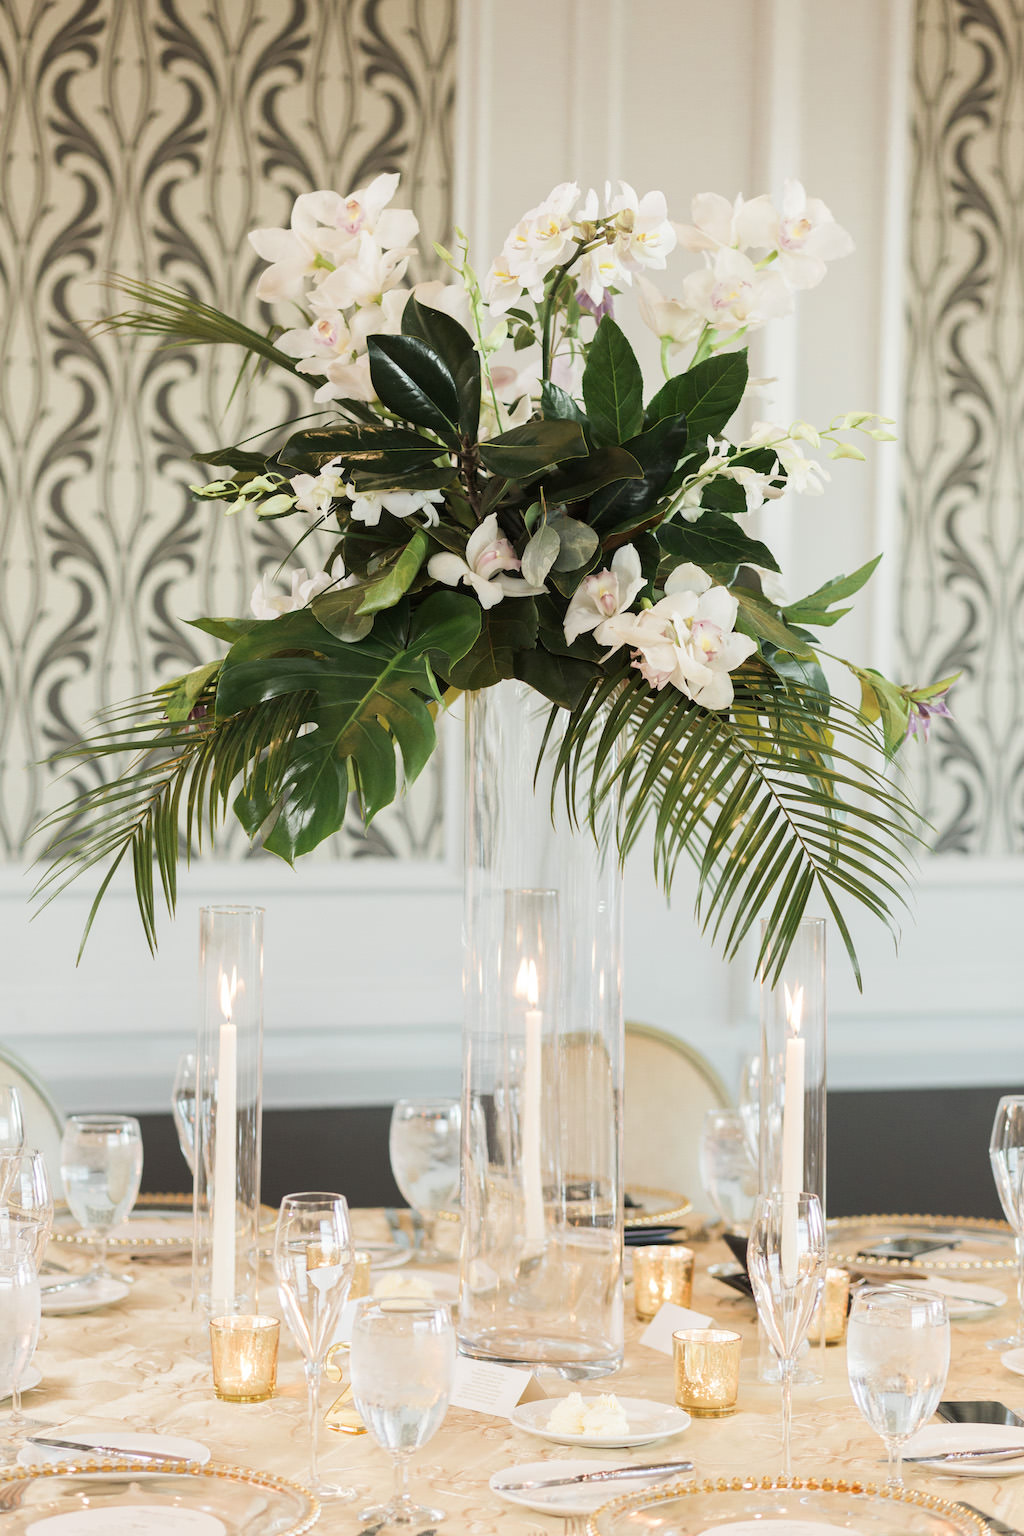 Classic, Tropical Inspired Wedding Reception Decor, Tall Glass Cylinder Vase with Palm Tree Branches, White Orchids and Green Leaves Floral Centerpiece, Round Table with Gold Tablecloth, Tall Candlesticks in Clear Cylinder Vases